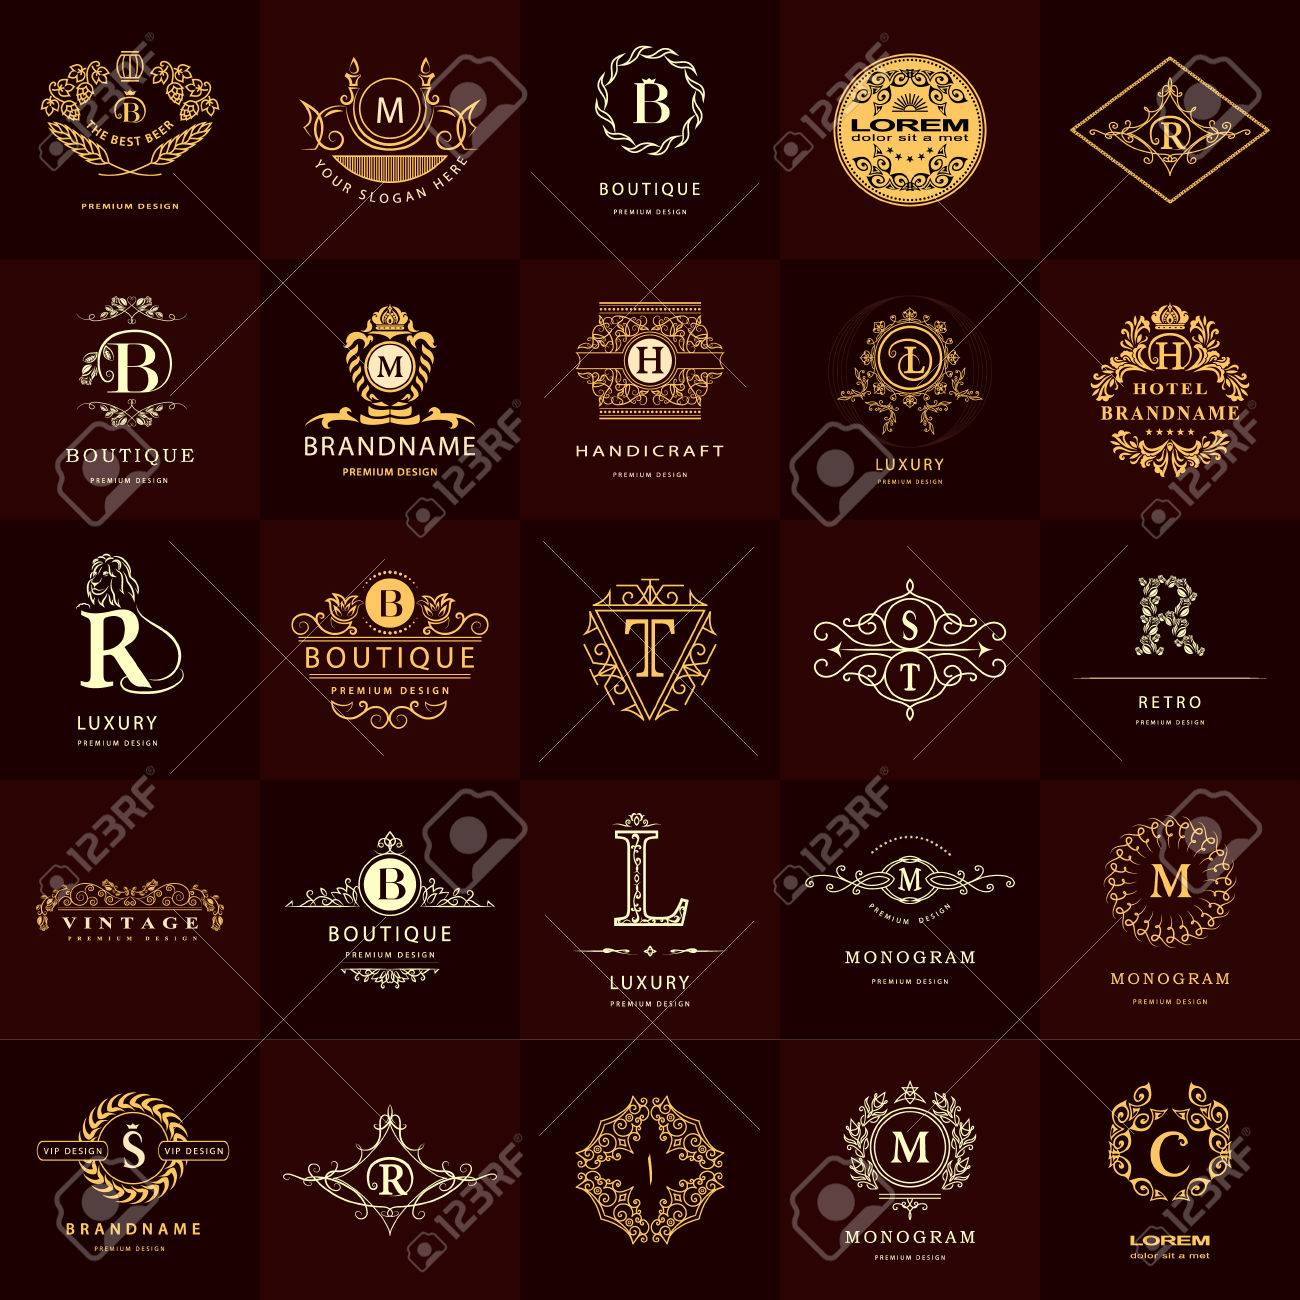 Vector illustration of line graphics monogram vintage logos vector illustration of line graphics monogram vintage logos design templates set business sign letter pronofoot35fo Gallery